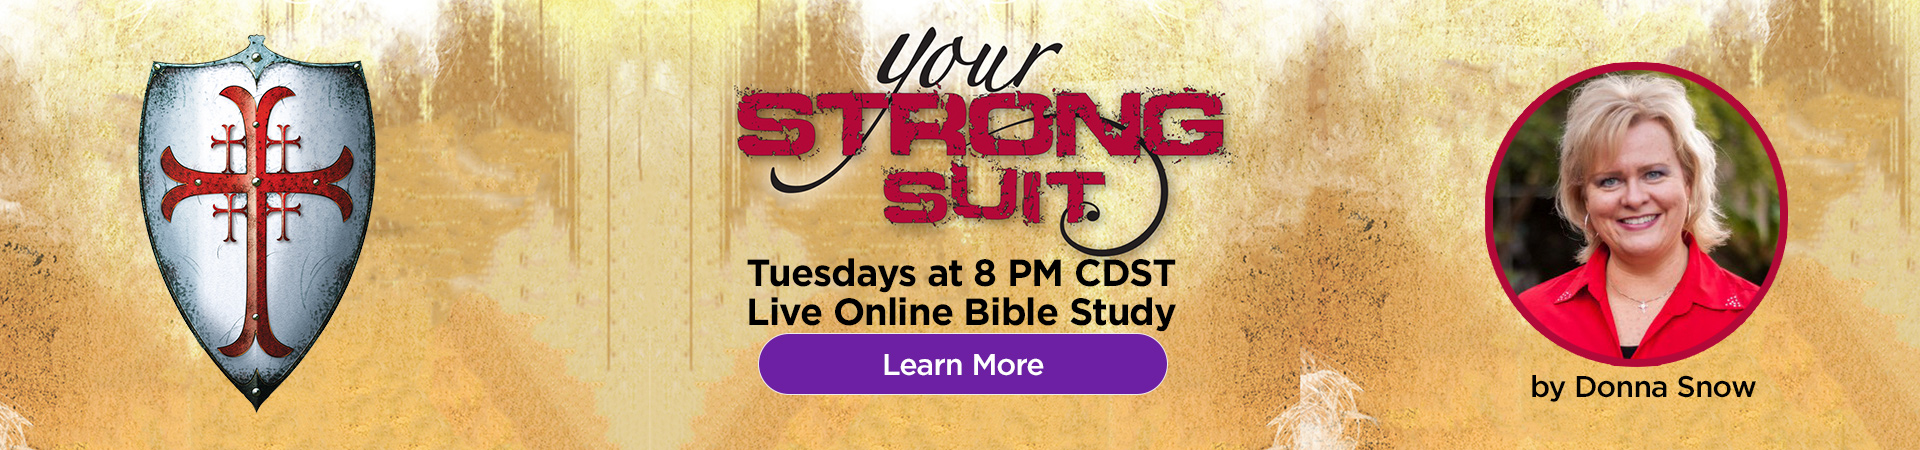 Your Strong Suit online Bible Study with Donna Snow live on Tuesdays at 8 PM Central! Learn more.